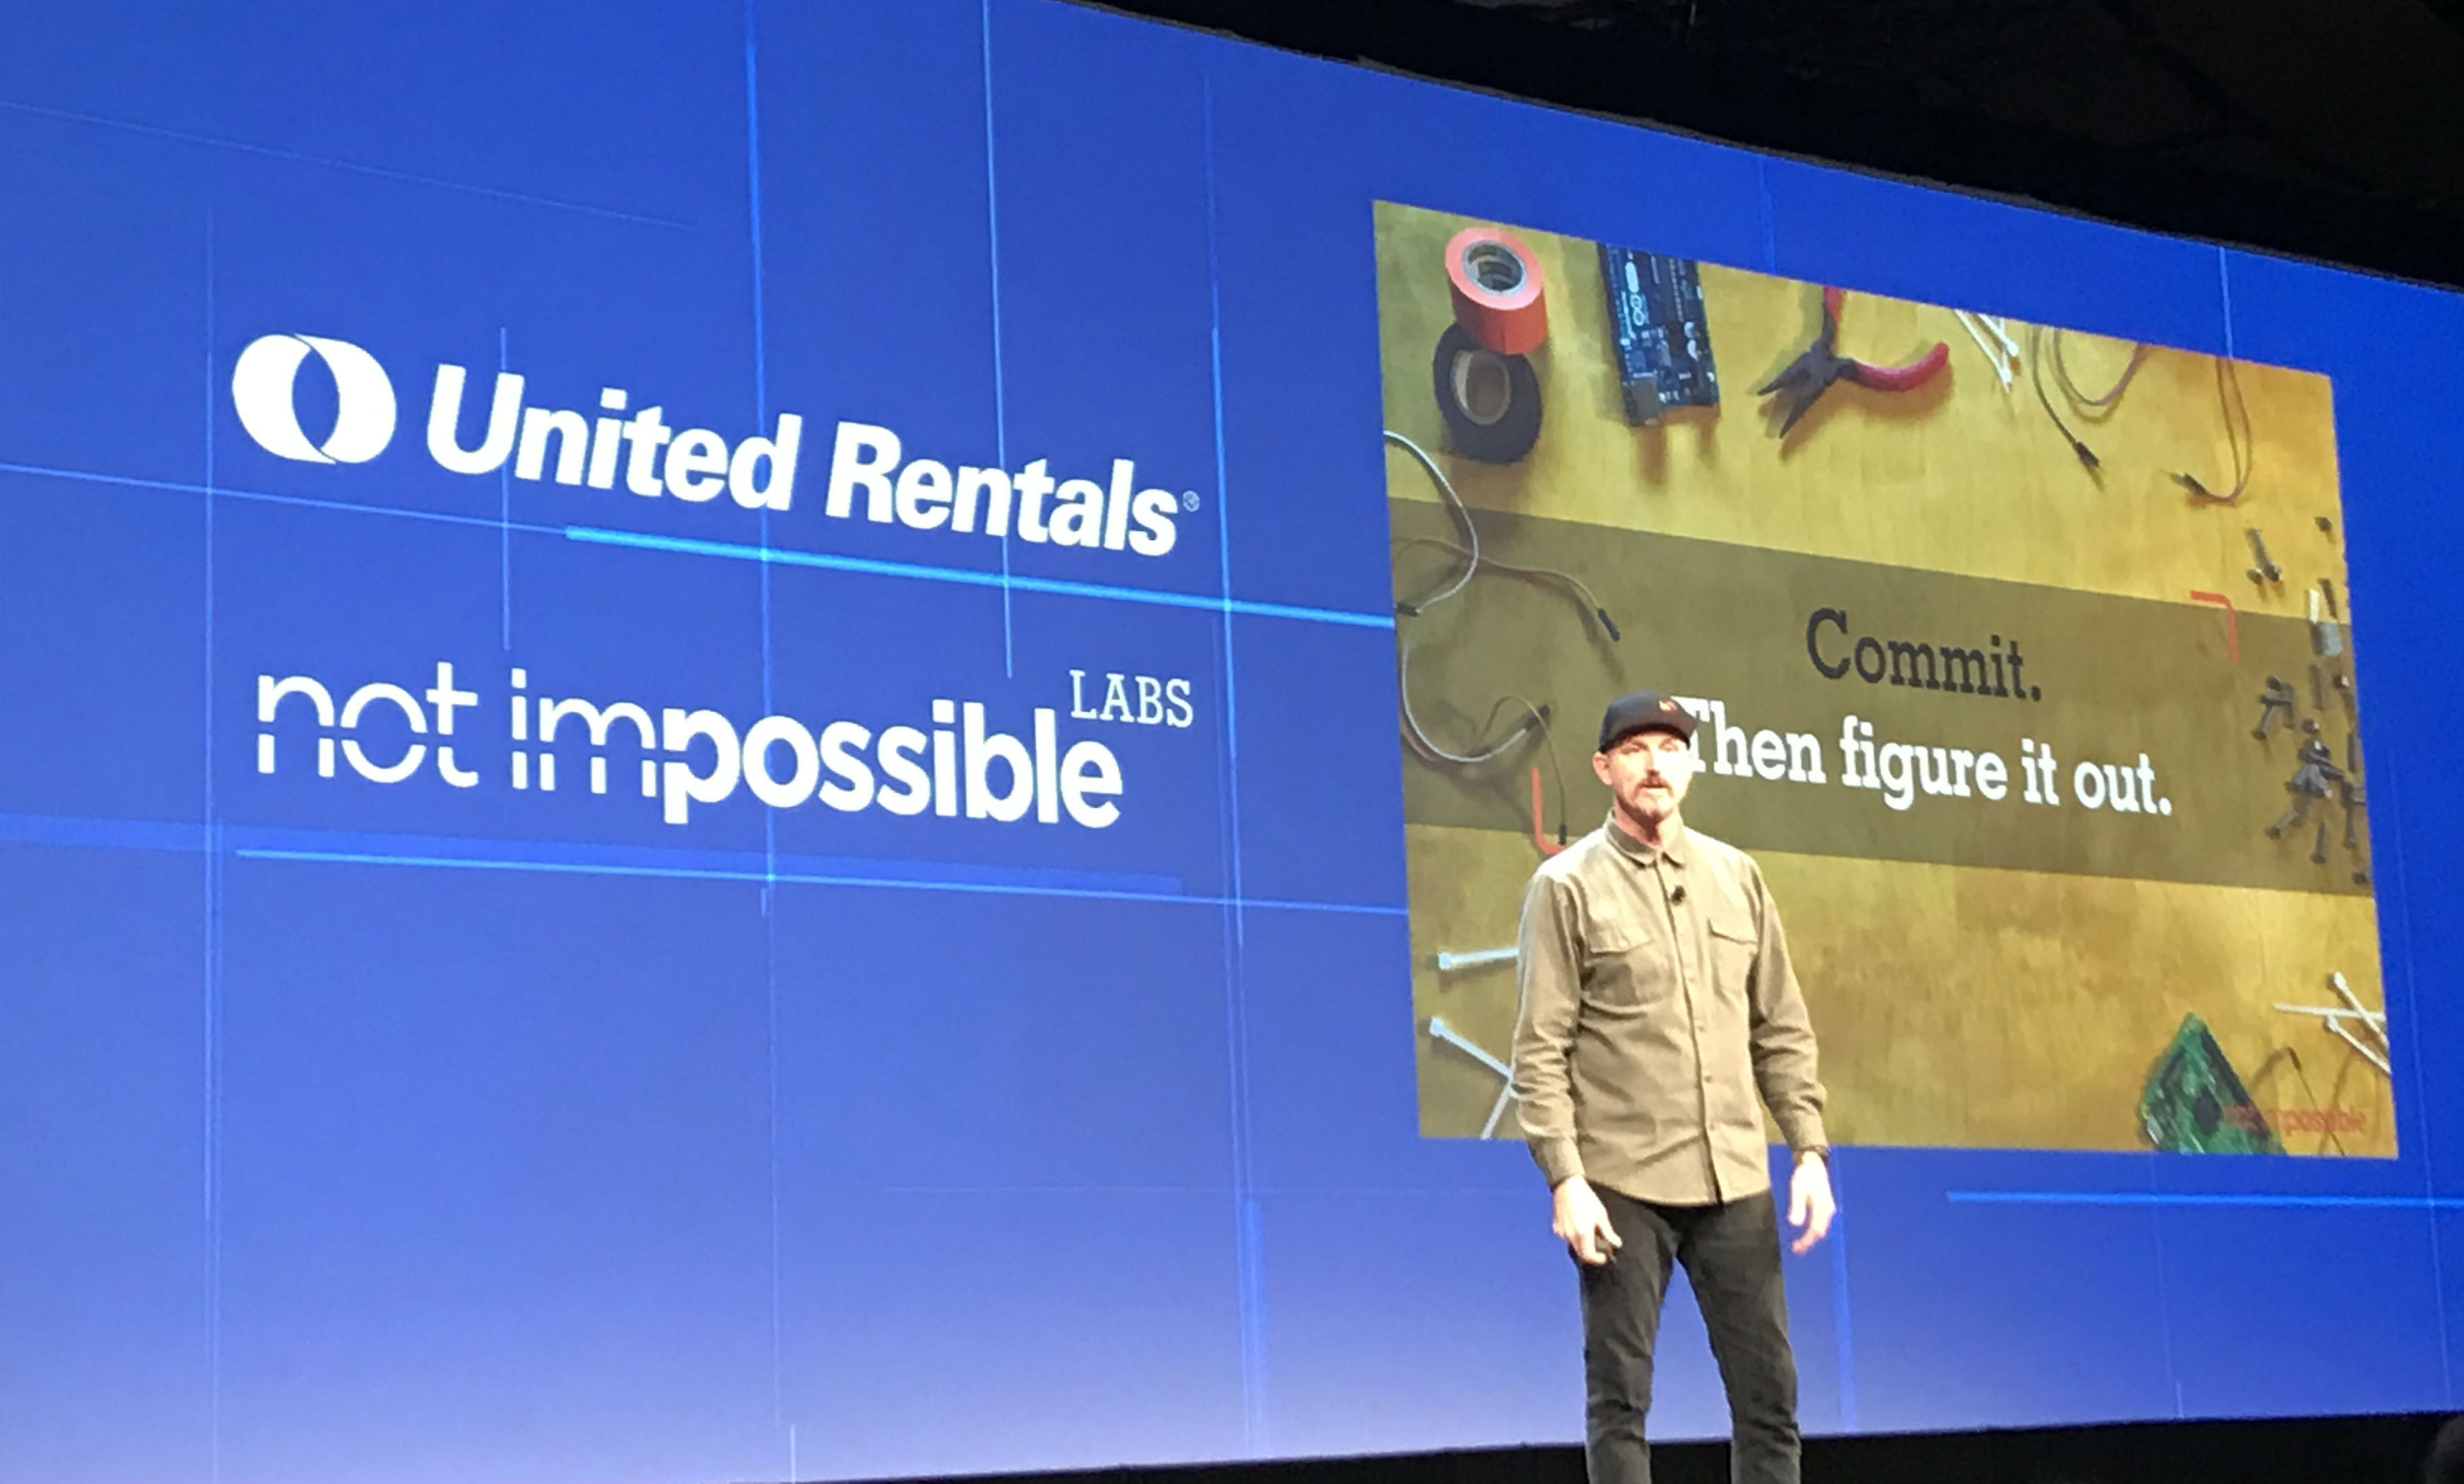 mick ebeling not impossible labs